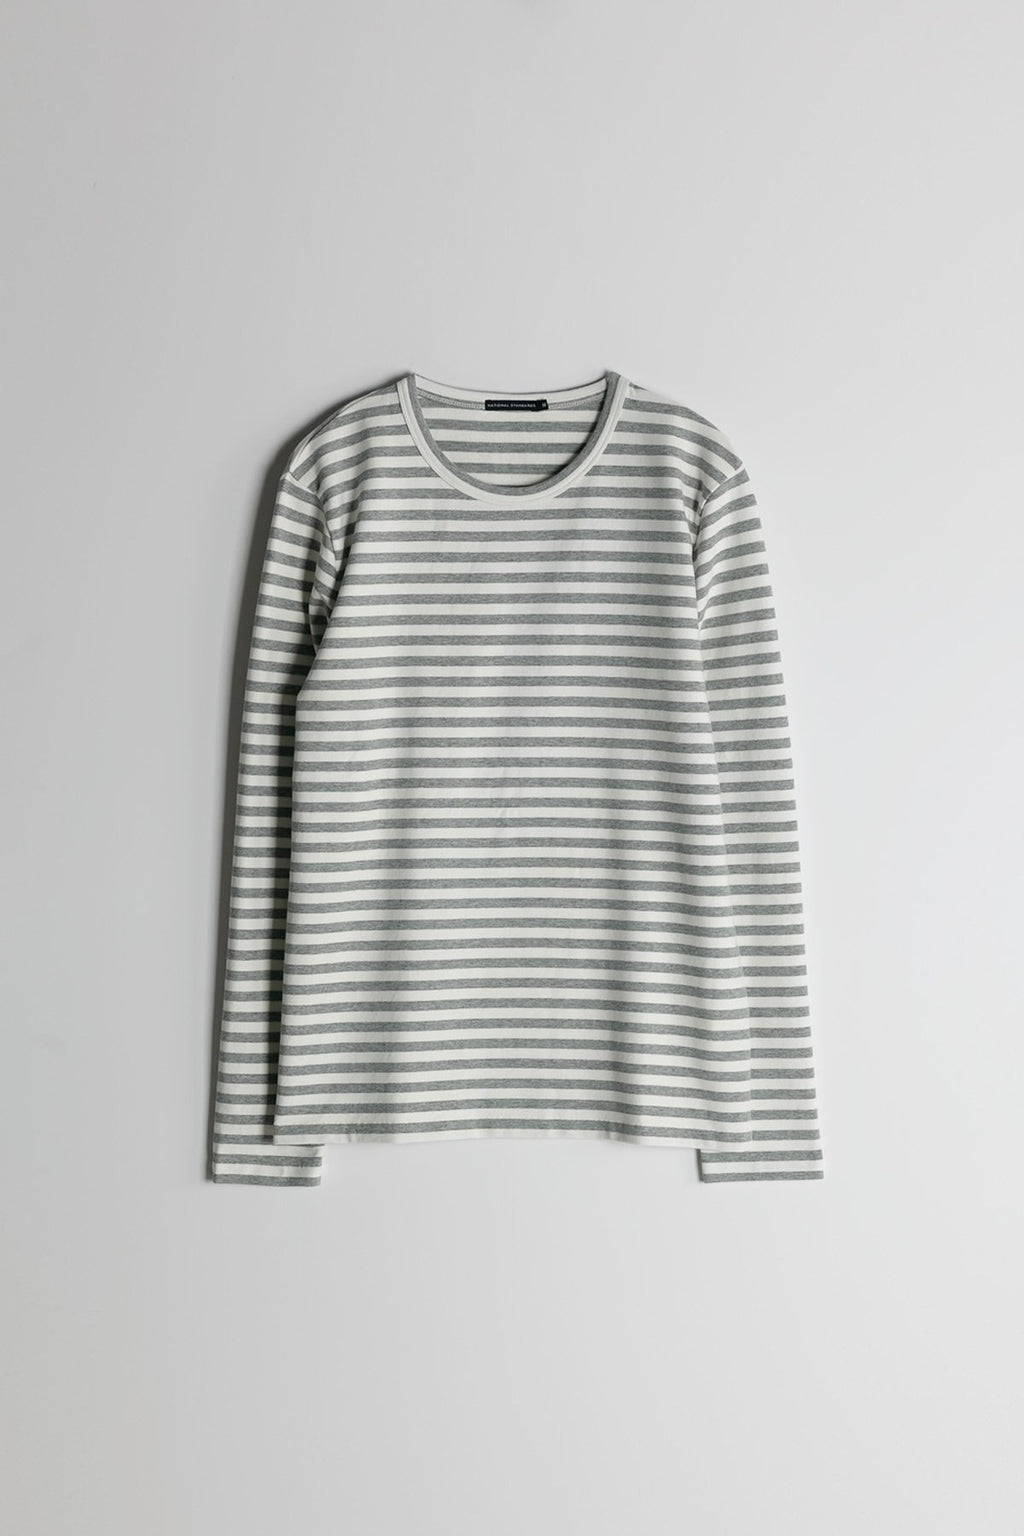 Marine Stripe L/S Crew in Grey and White